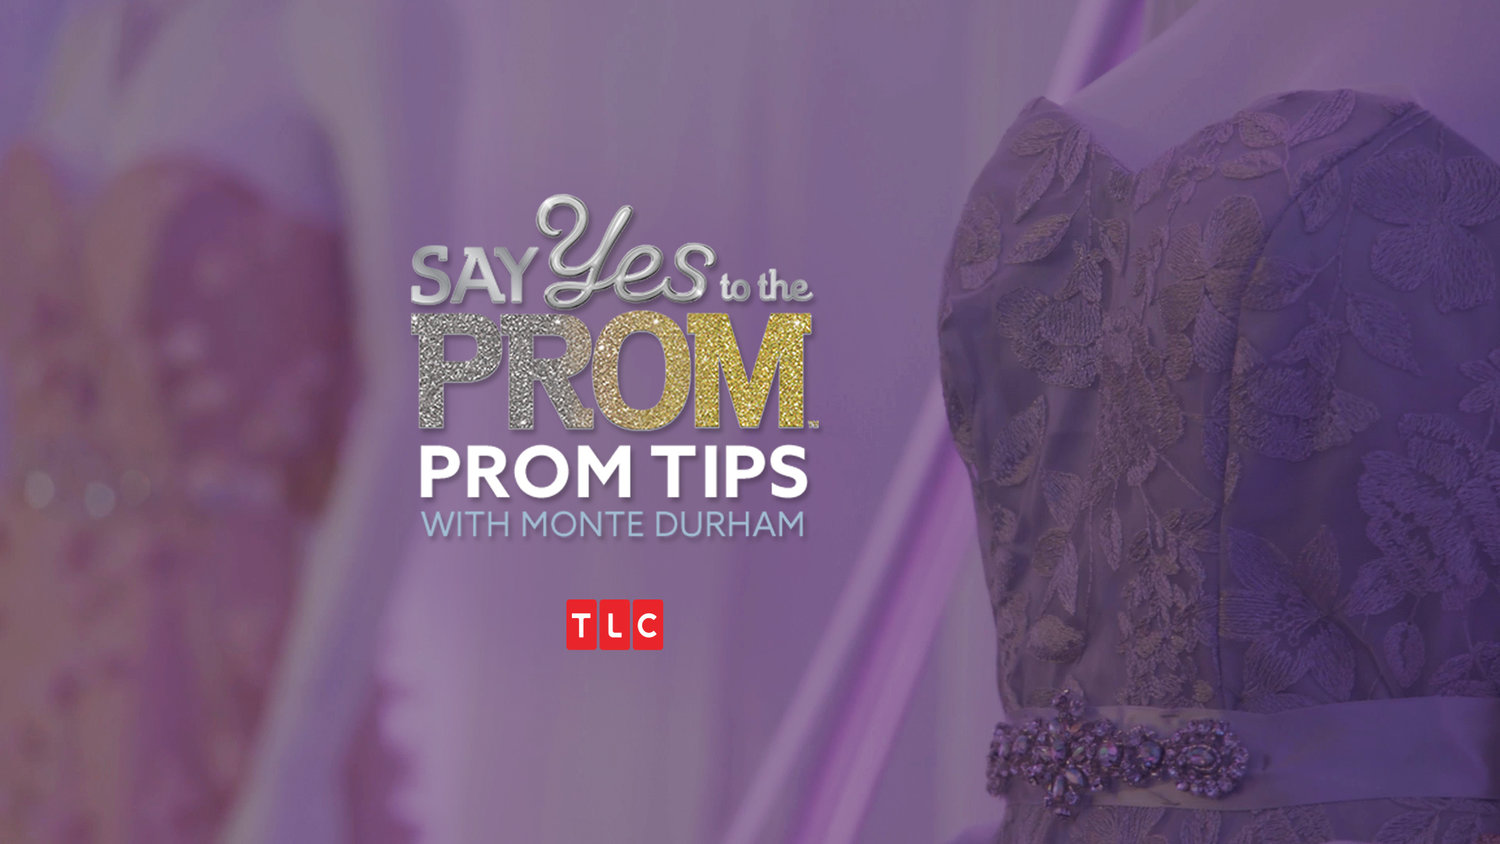 Say Yes Prom Tips With Monte Durham Leigh Solomon